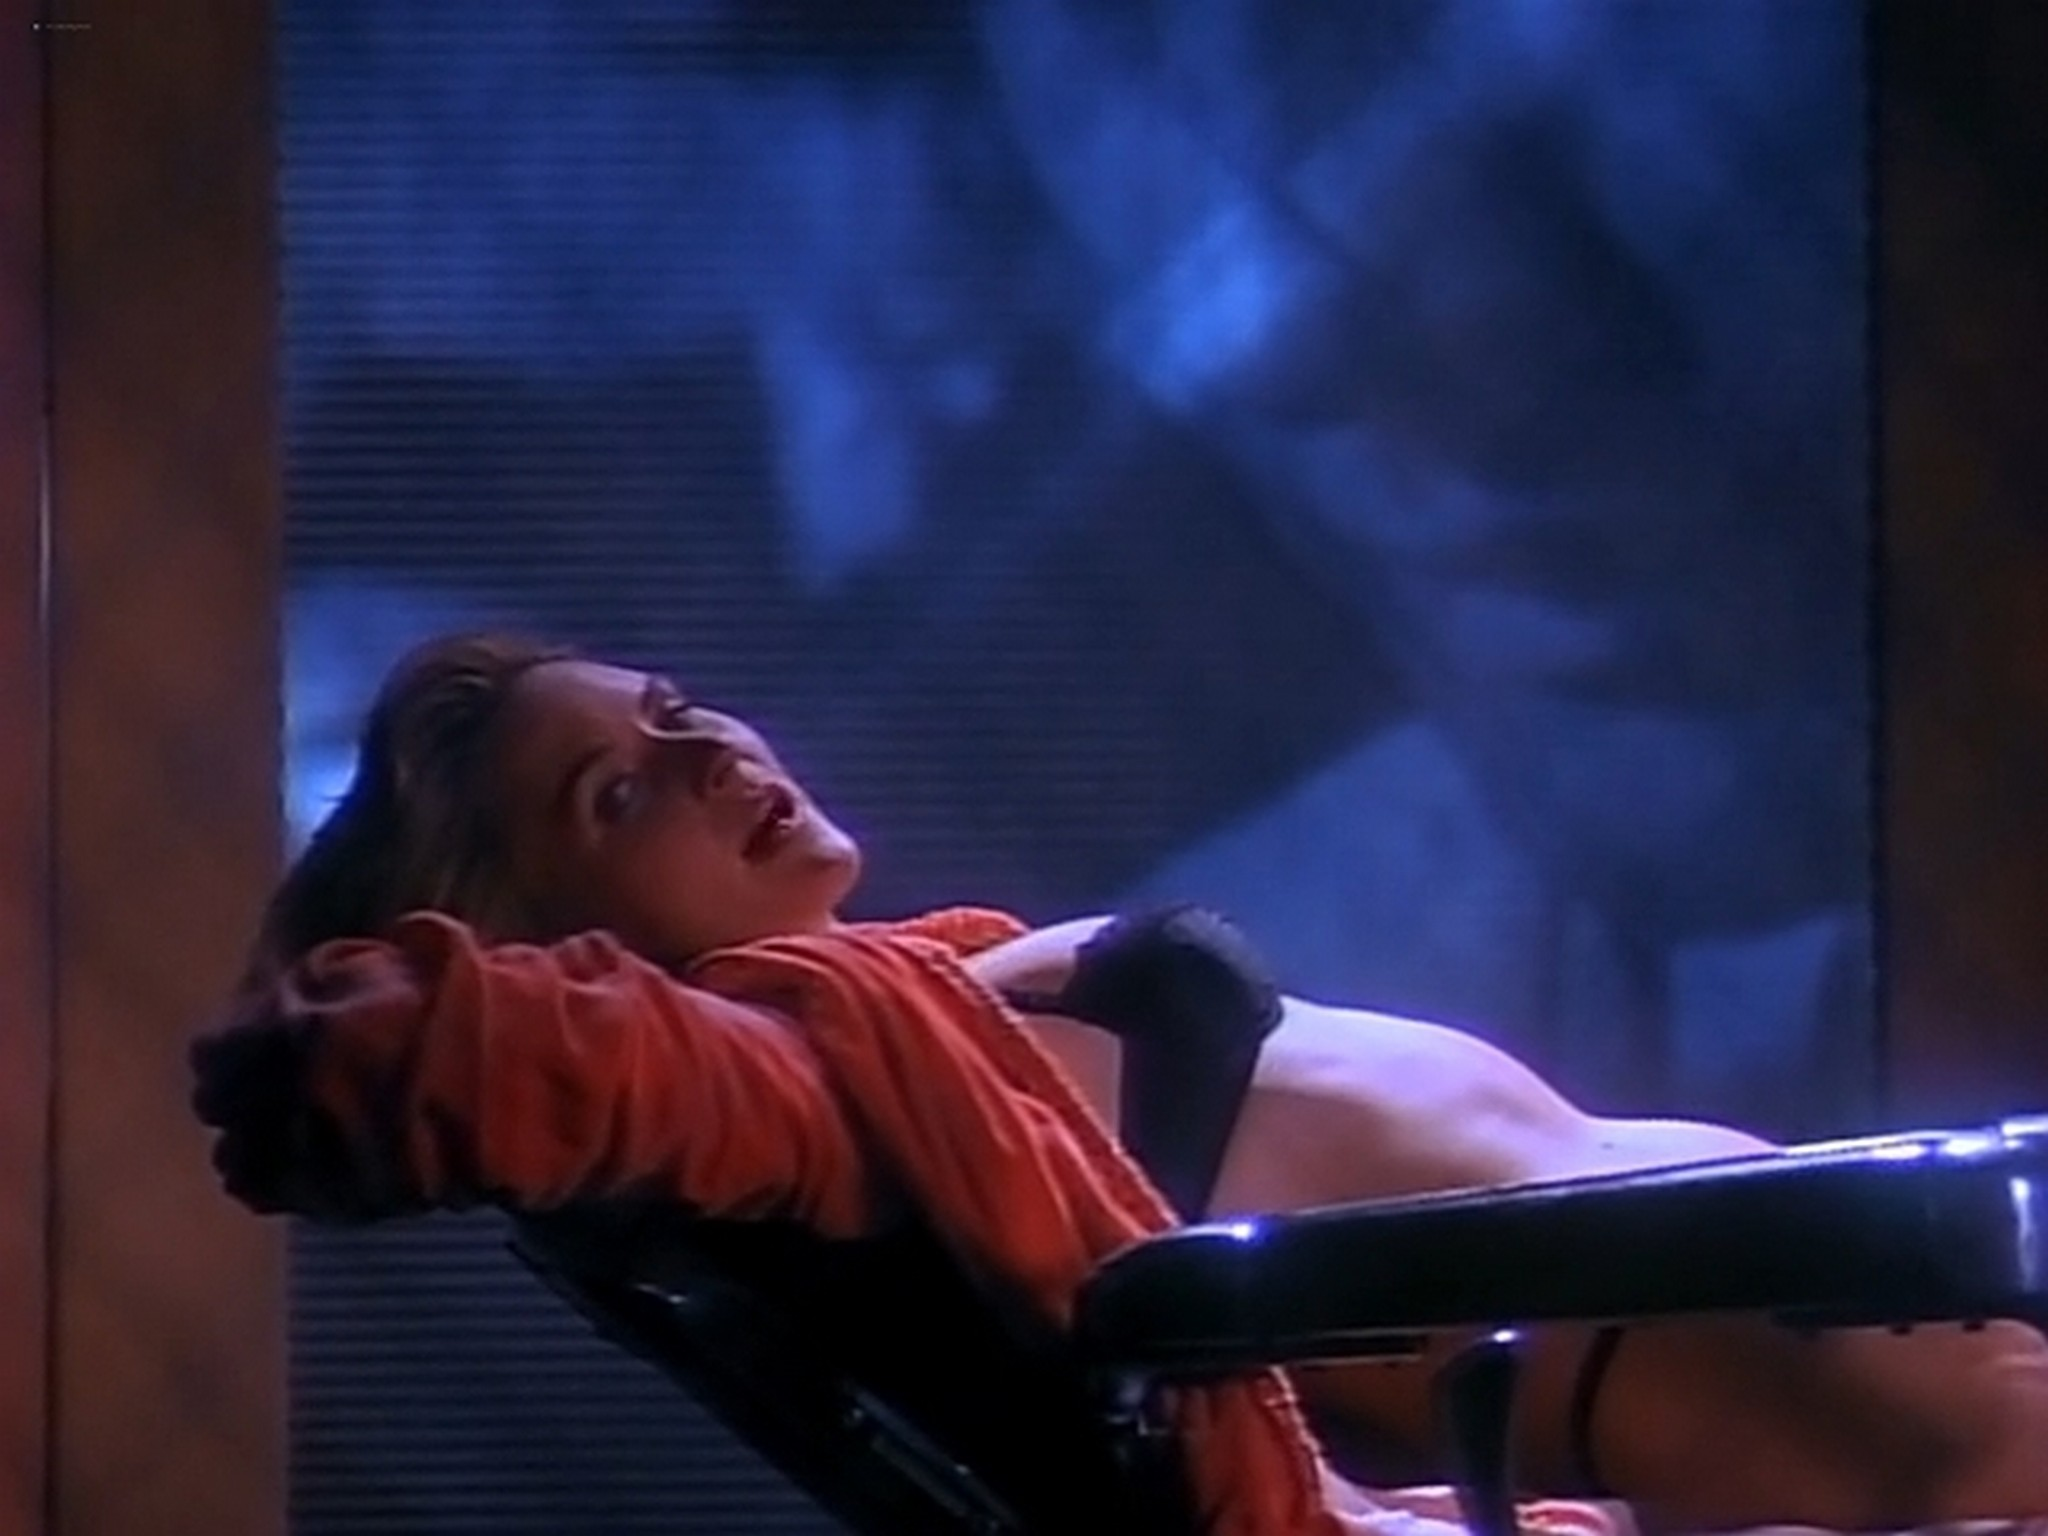 Denise Crosby nude and sex Red Shoe Diaries You Have the Right to Remain Silent 1992 DVDRip 3